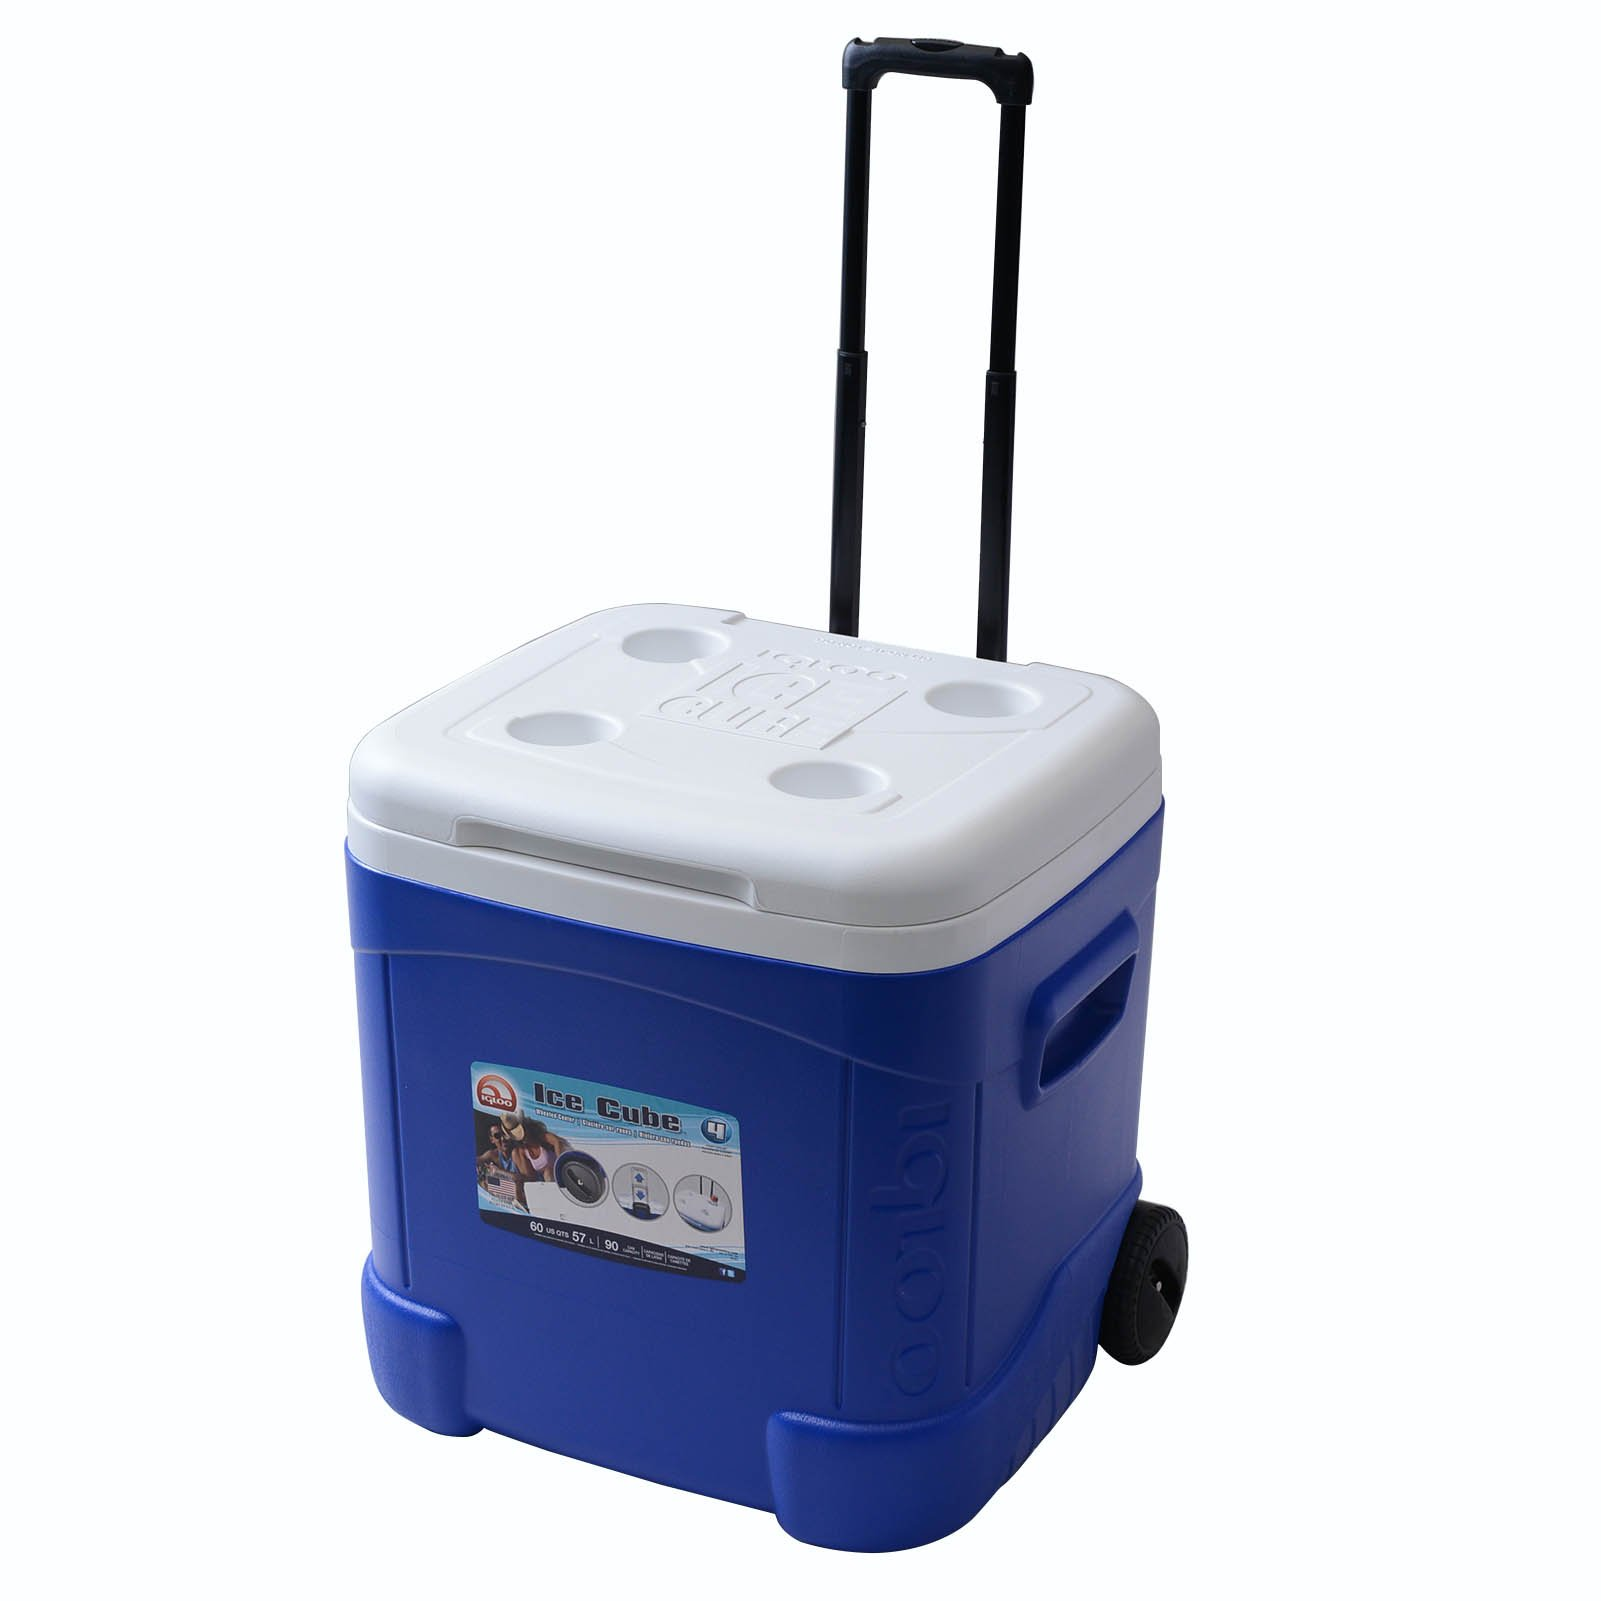 Igloo Ice Cube Roller Cooler (60-Quart, Ocean Blue) by Igloo (Image #1)